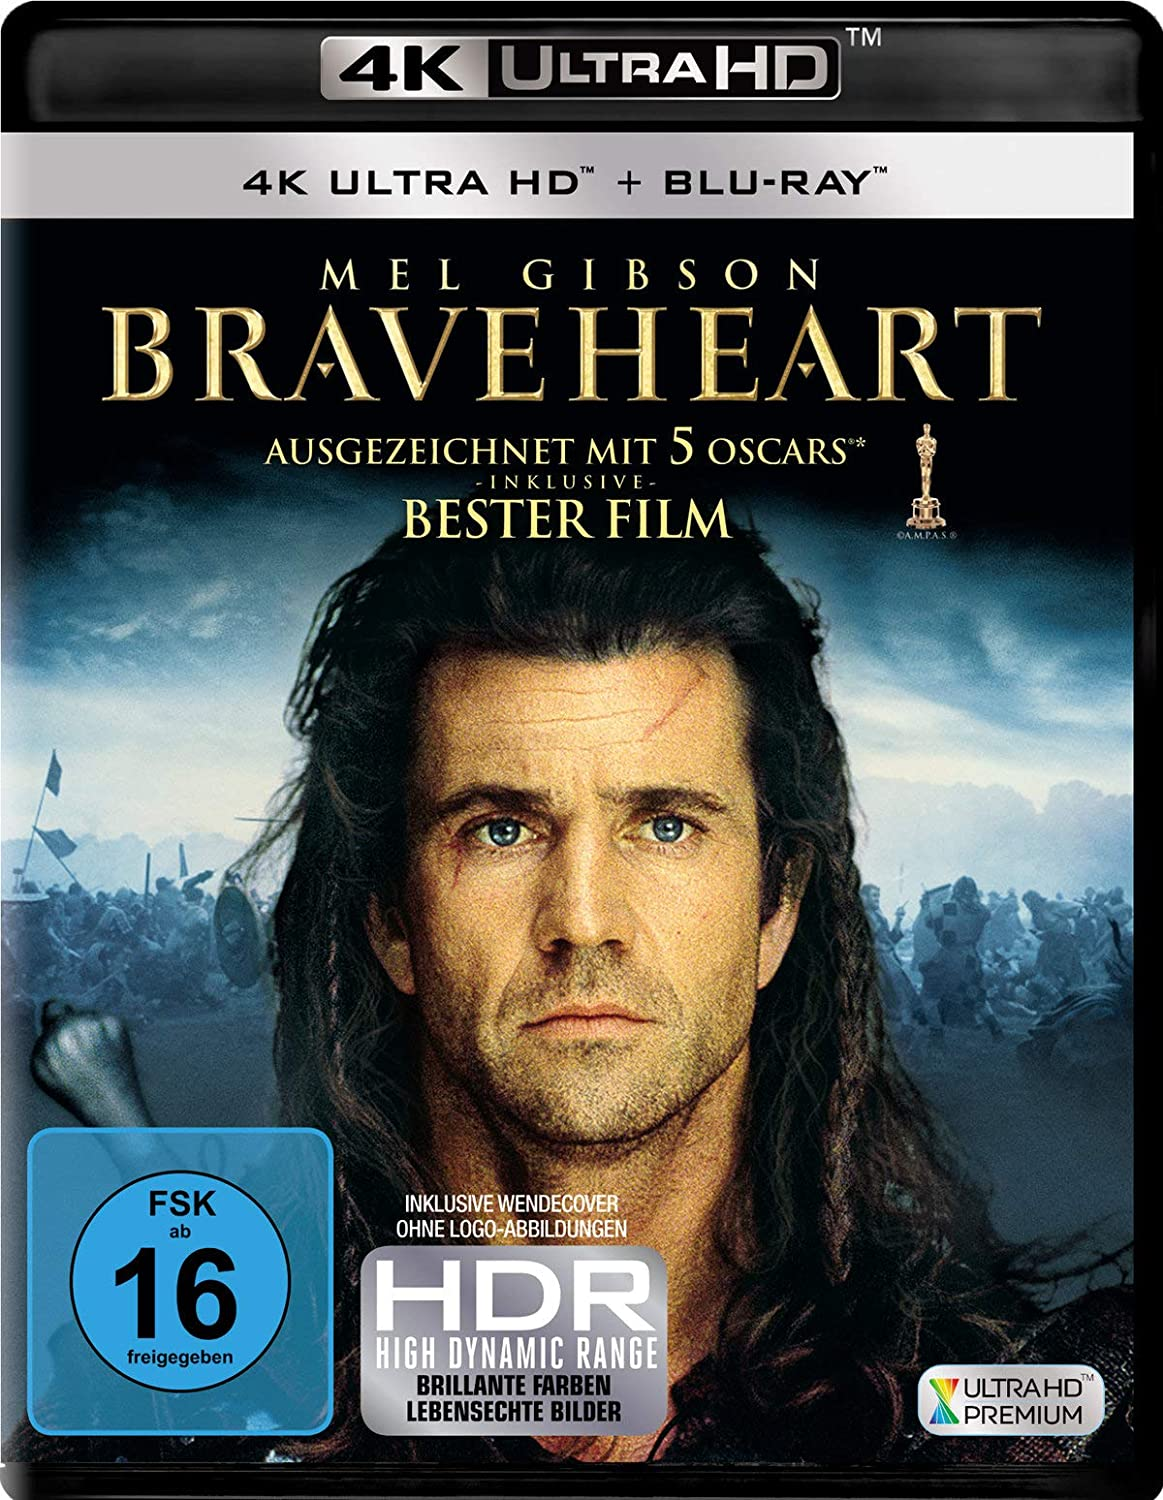 Braveheart - 4K Ultra HD [UHD + Blu-ray Disc]